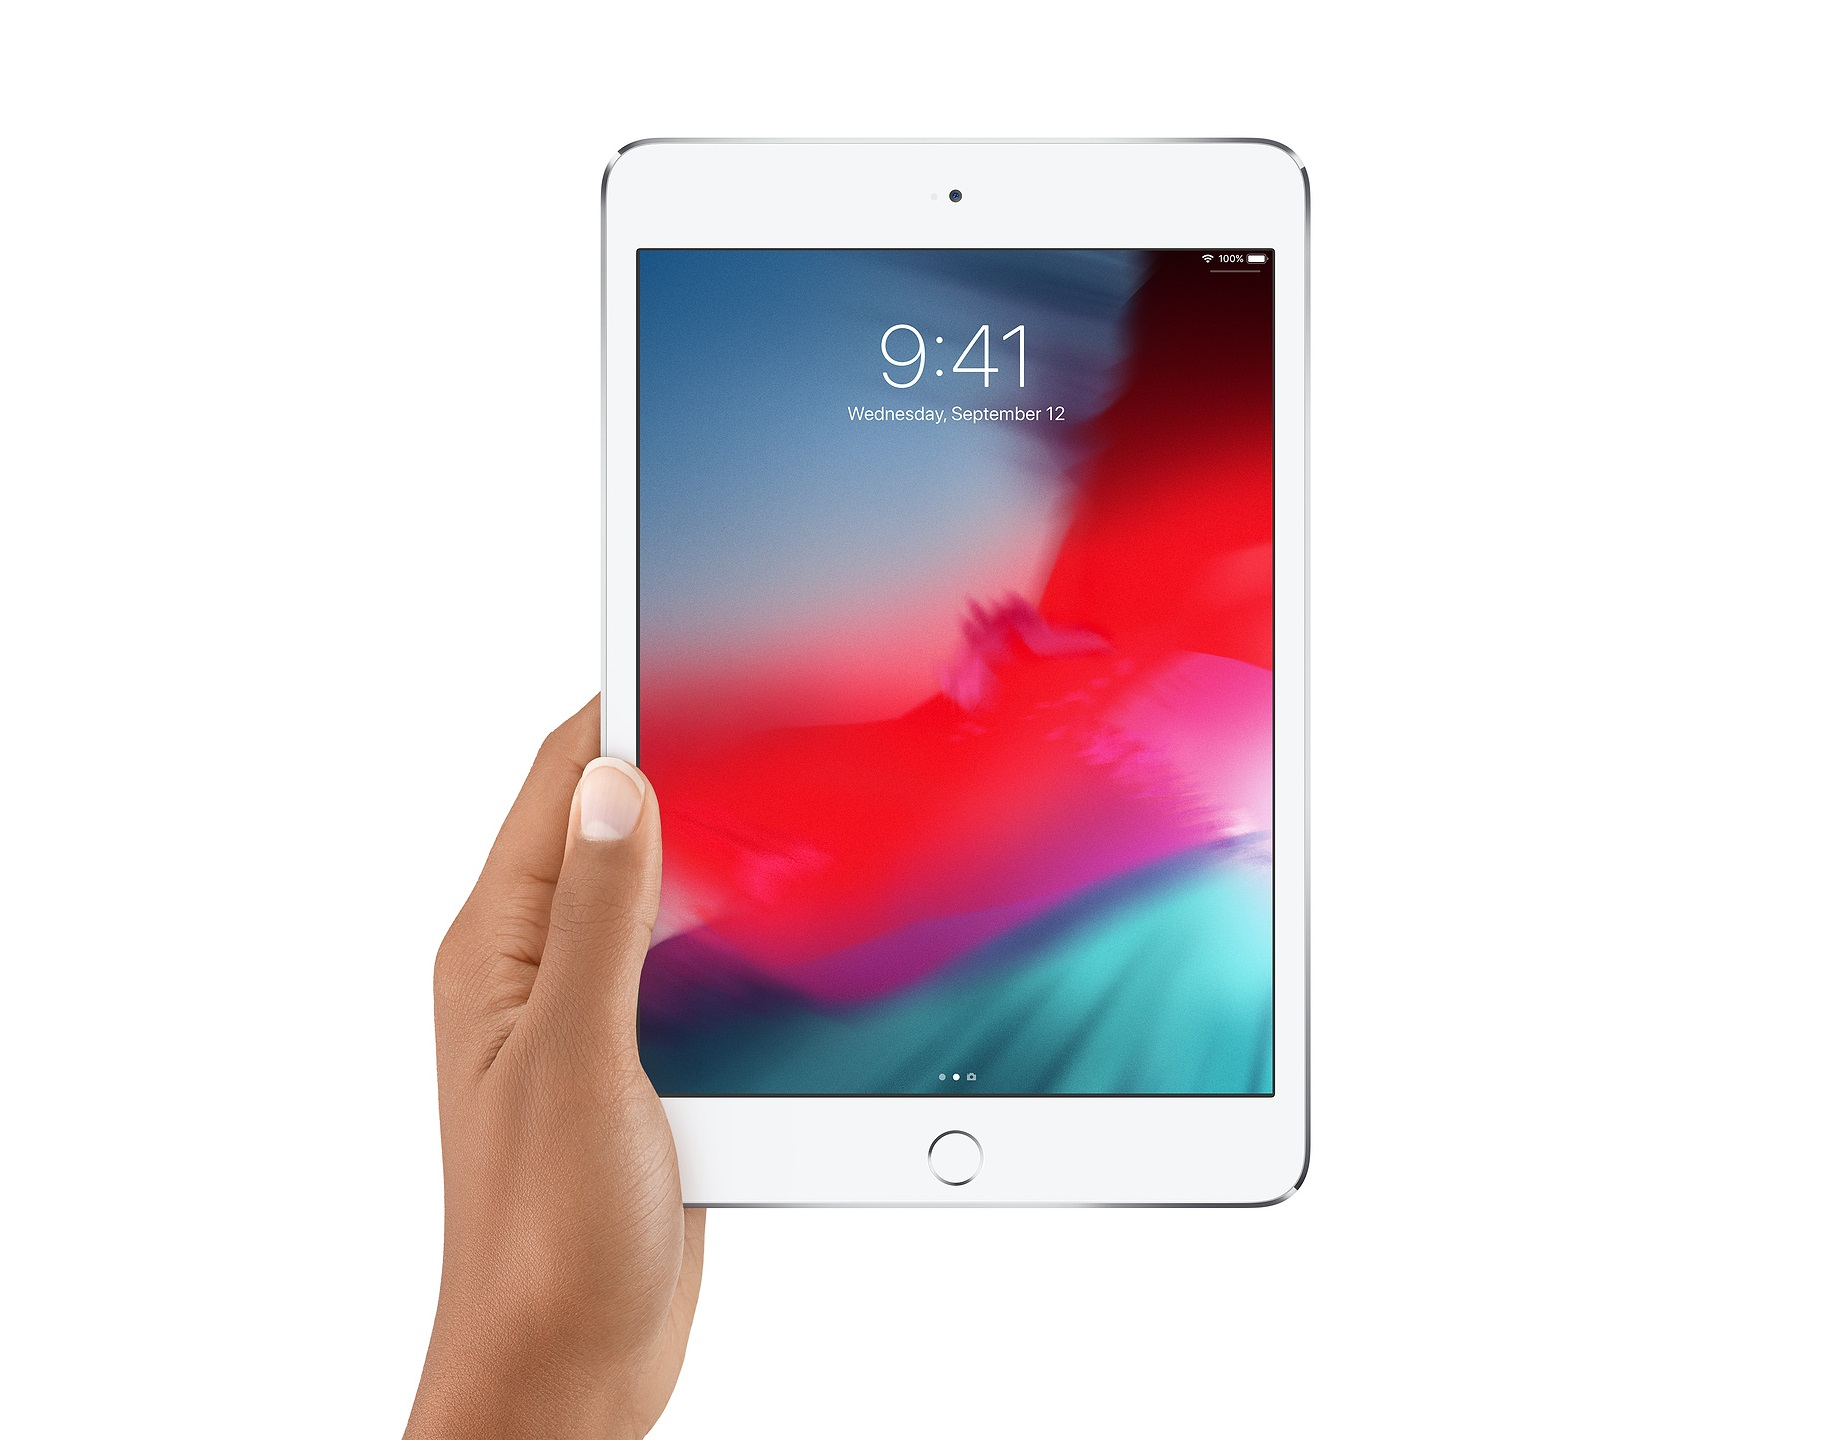 apple neues ipad mini und 10 zoll budget ipad mit face id. Black Bedroom Furniture Sets. Home Design Ideas